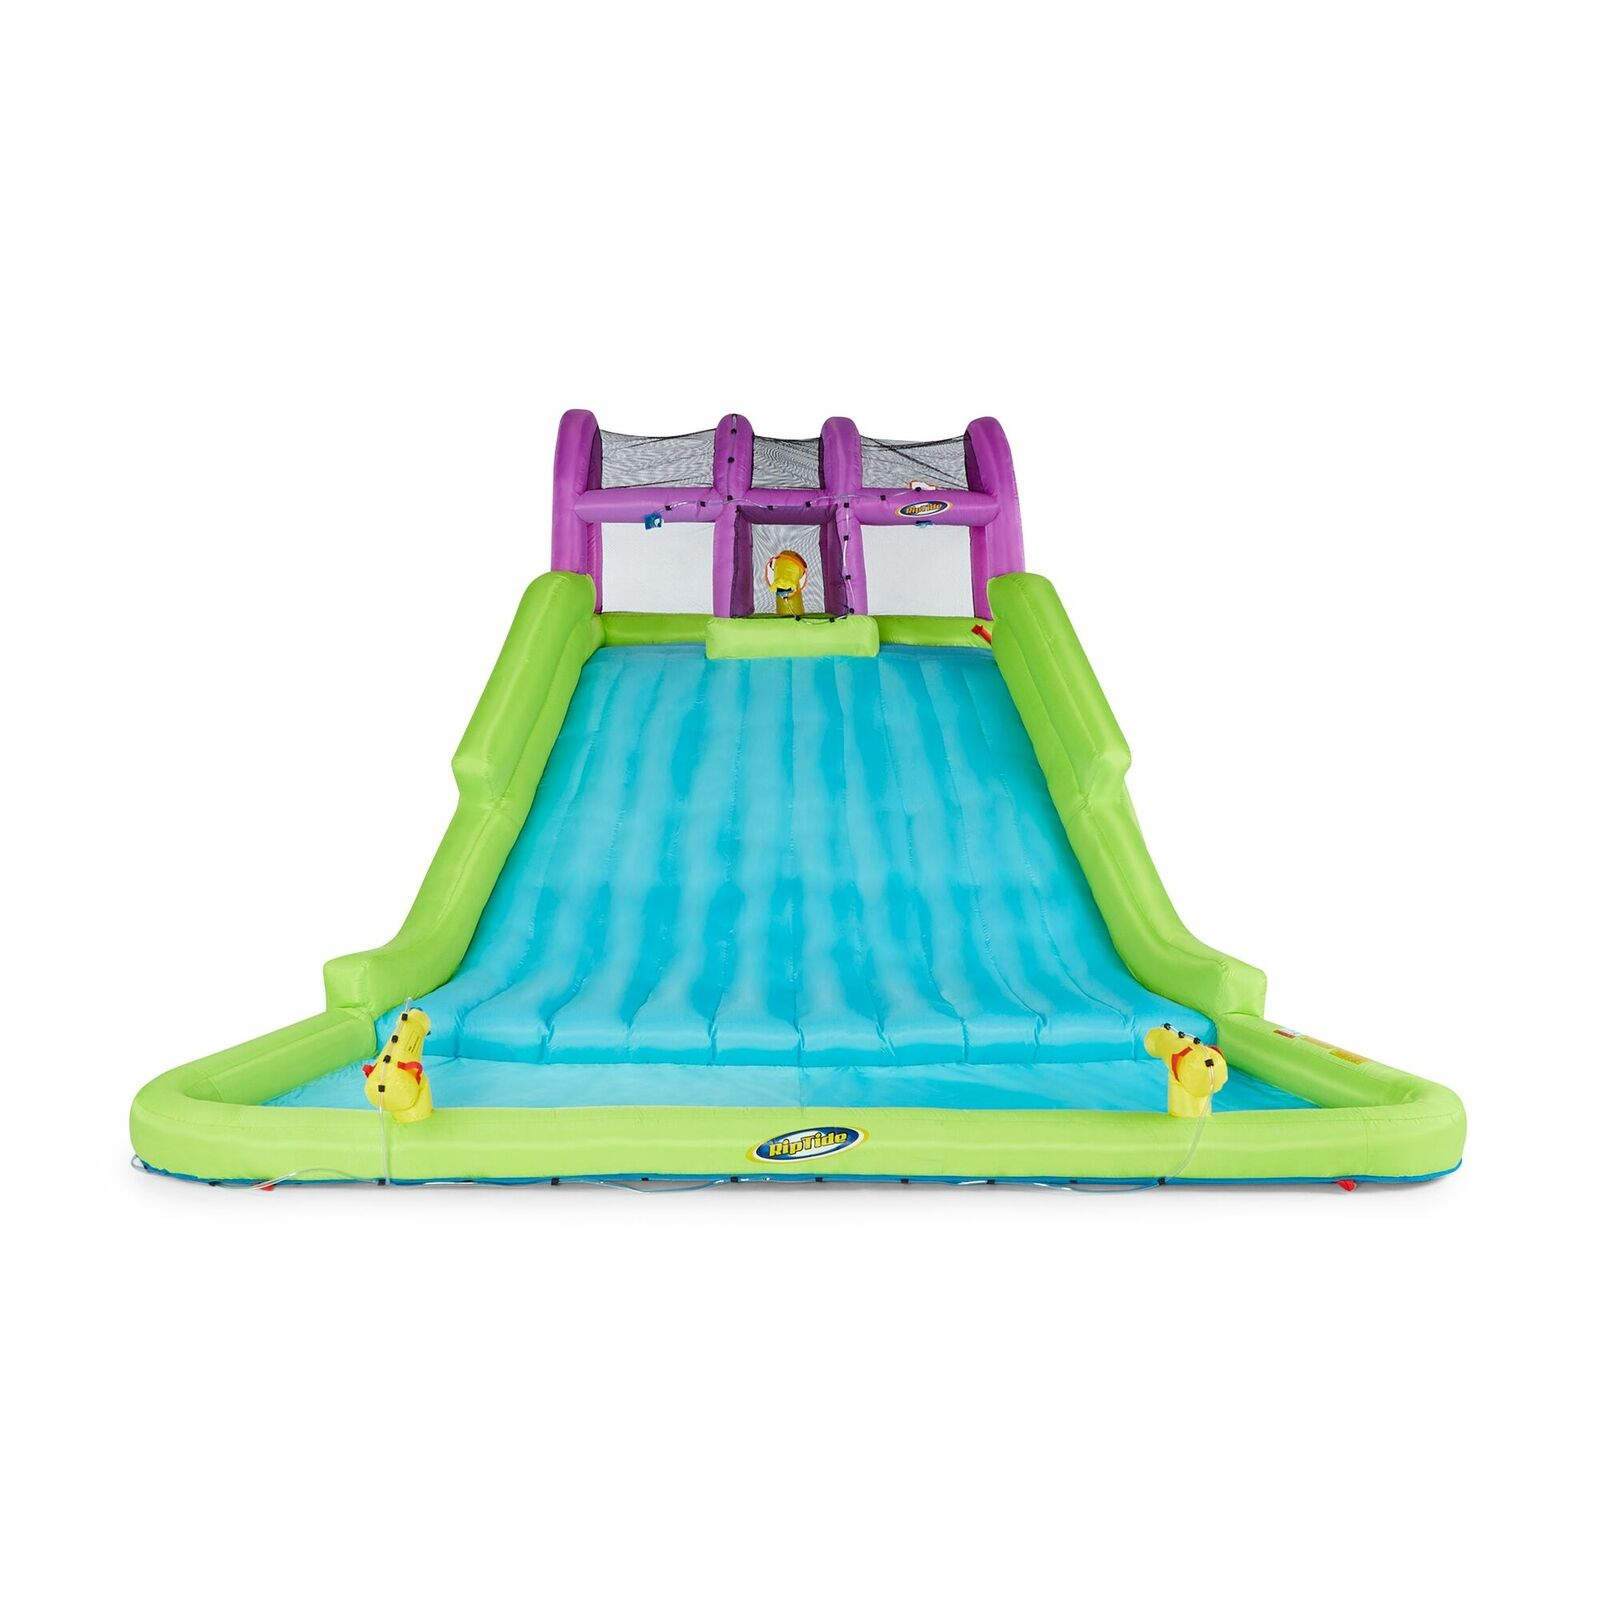 Image of: Inflatable Water Park Crocodile Island Slide Blast Zone For Sale Online Ebay